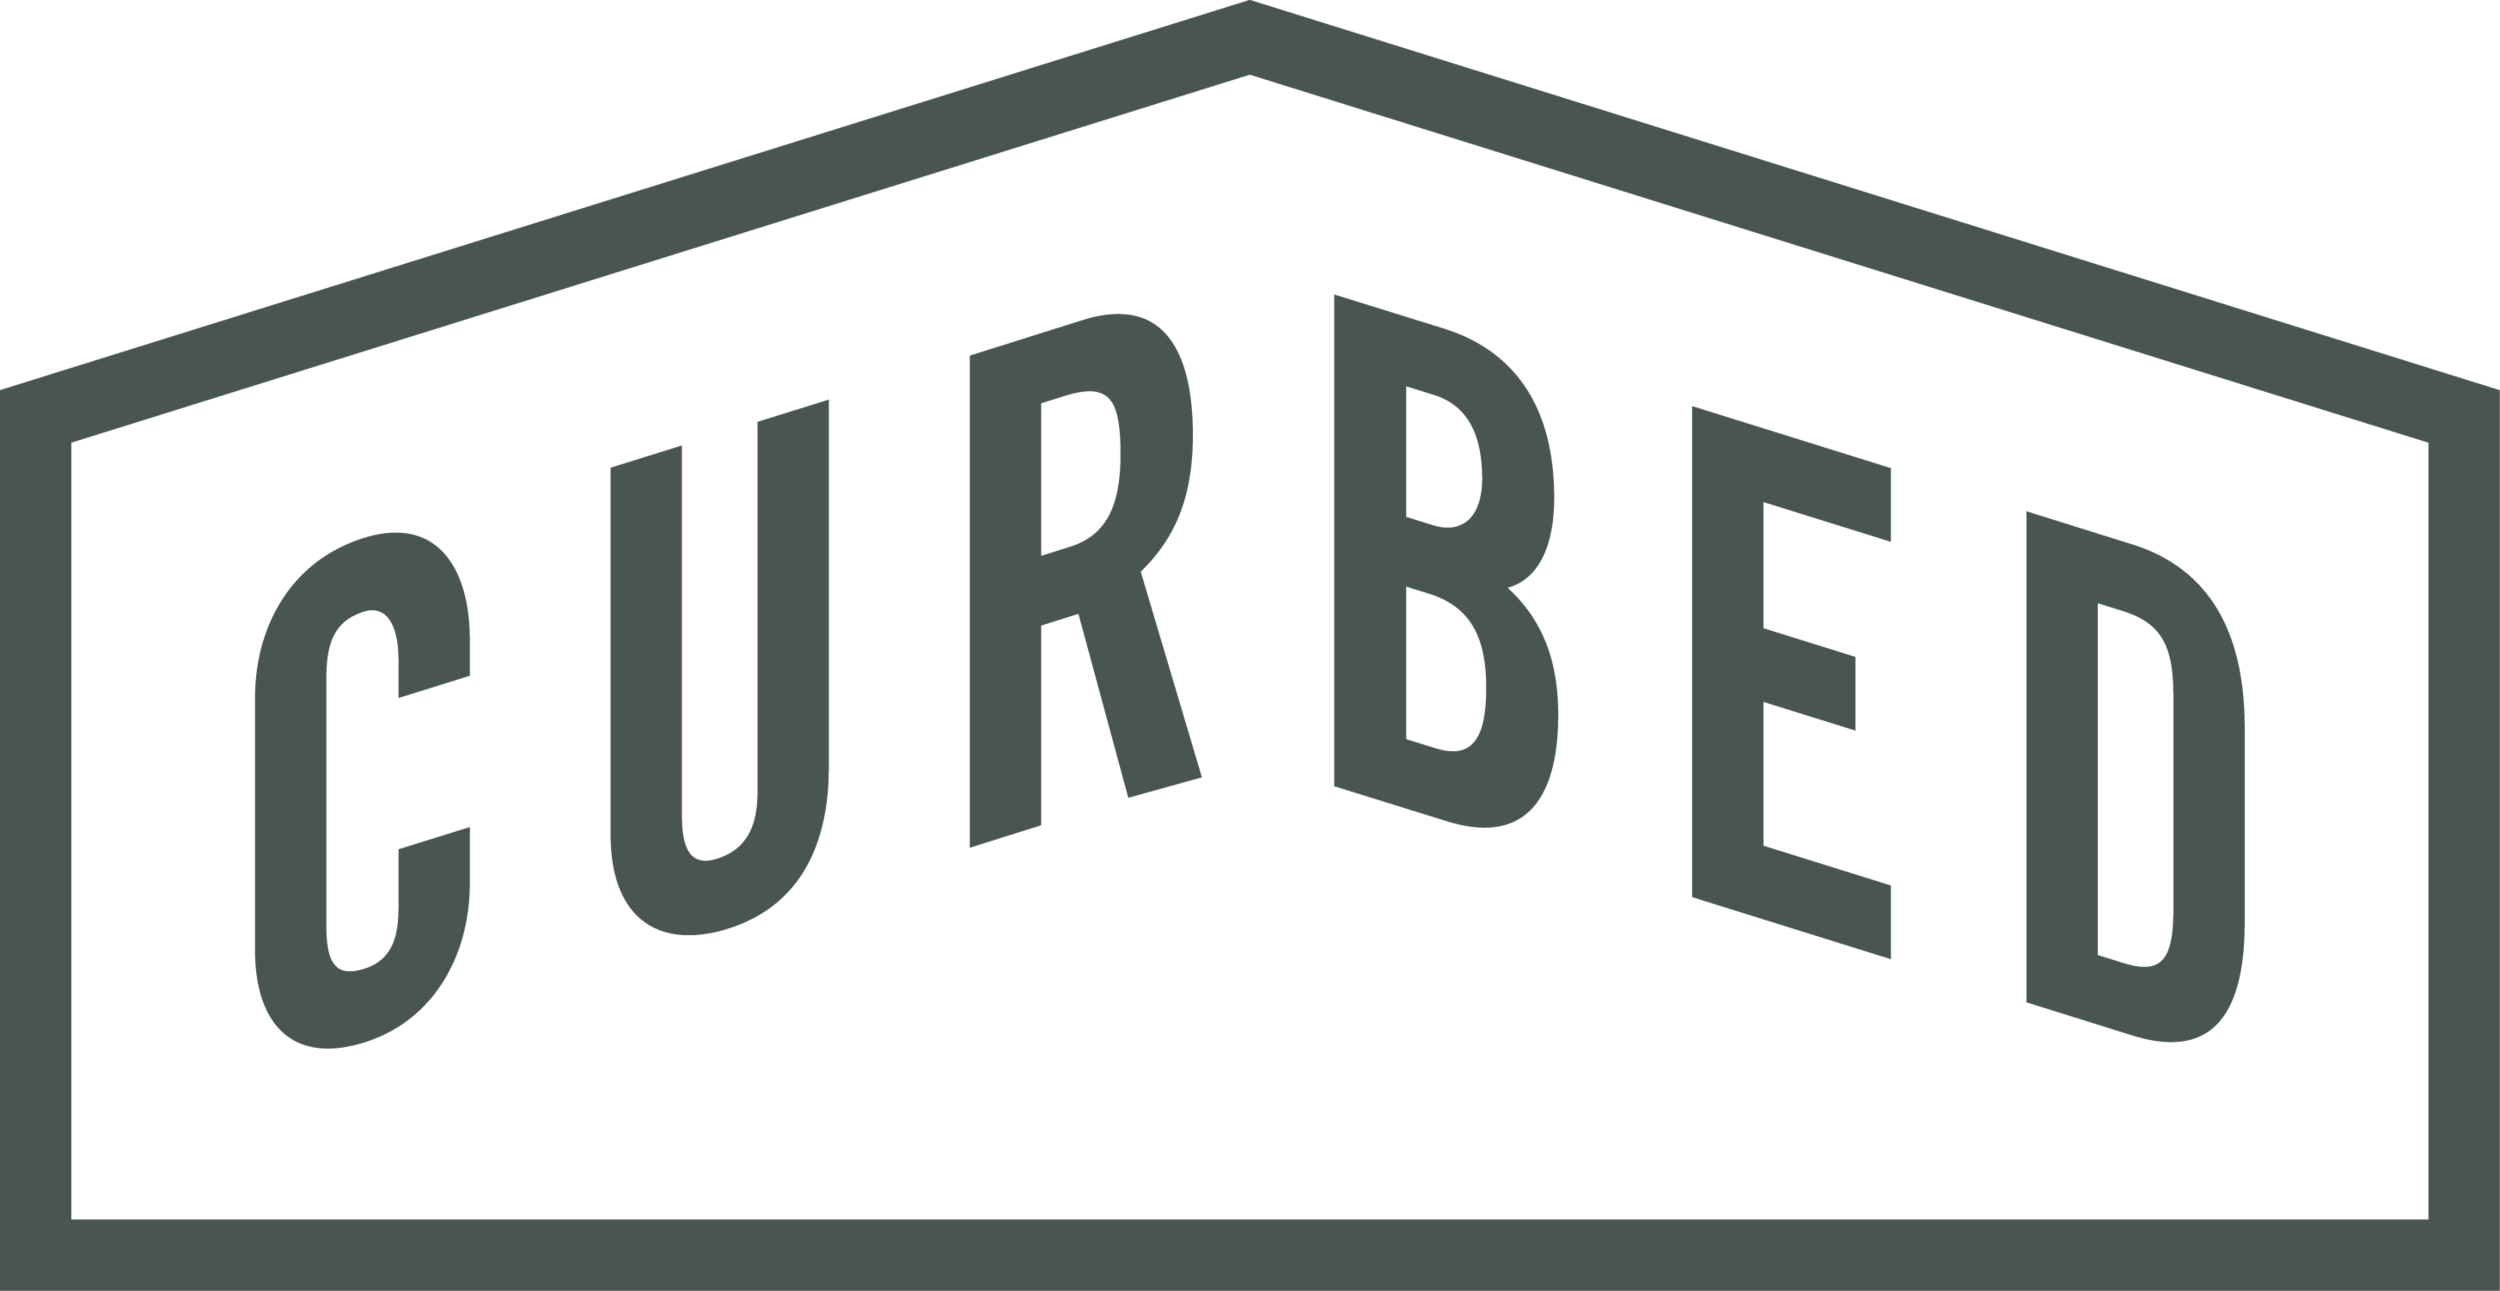 curbed-logo-slate_0.png